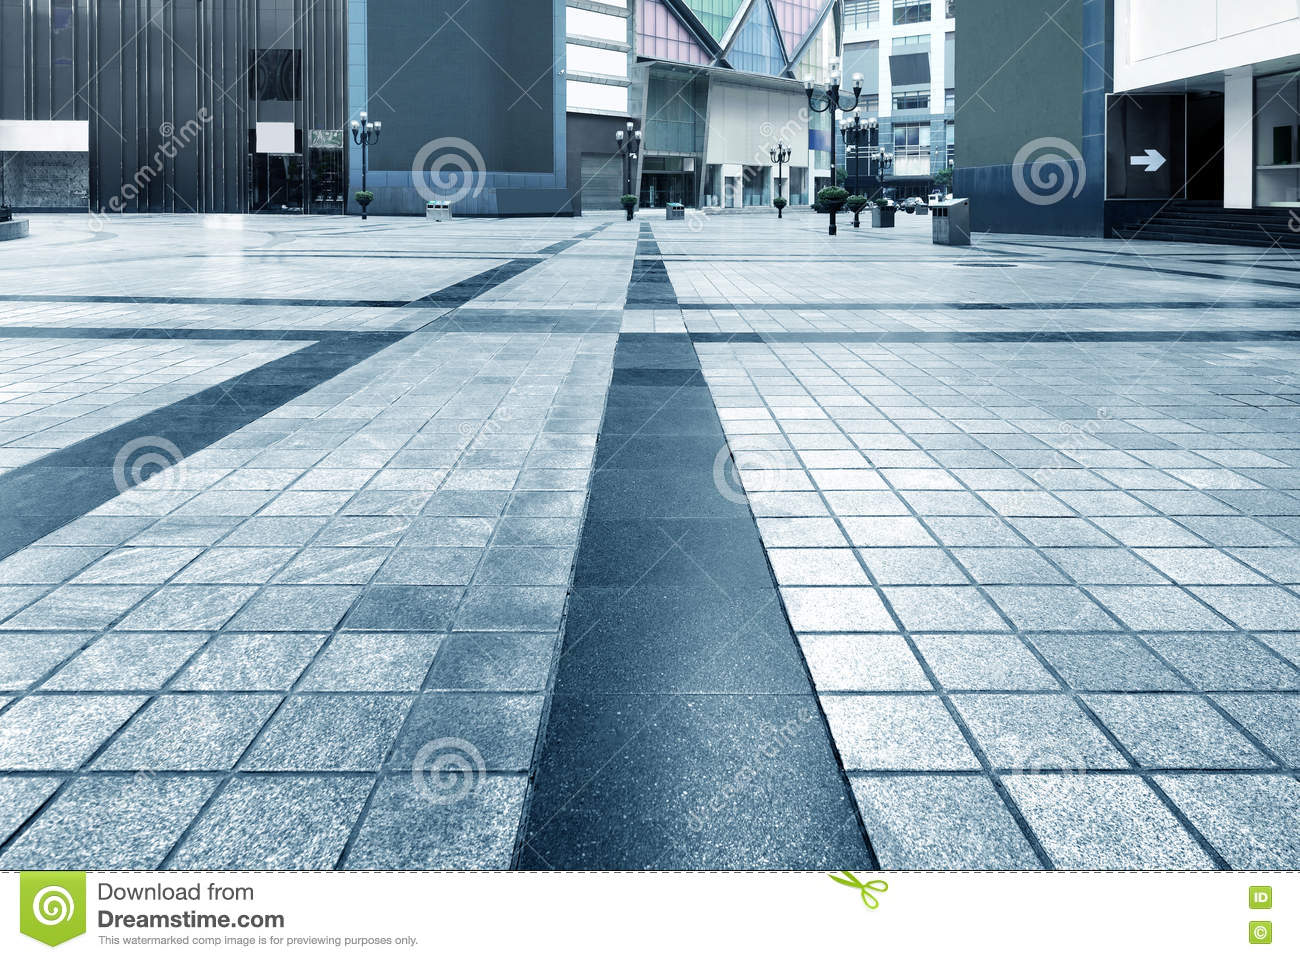 City square and floor tiles stock image image 76730233 city square and floor tiles dailygadgetfo Gallery